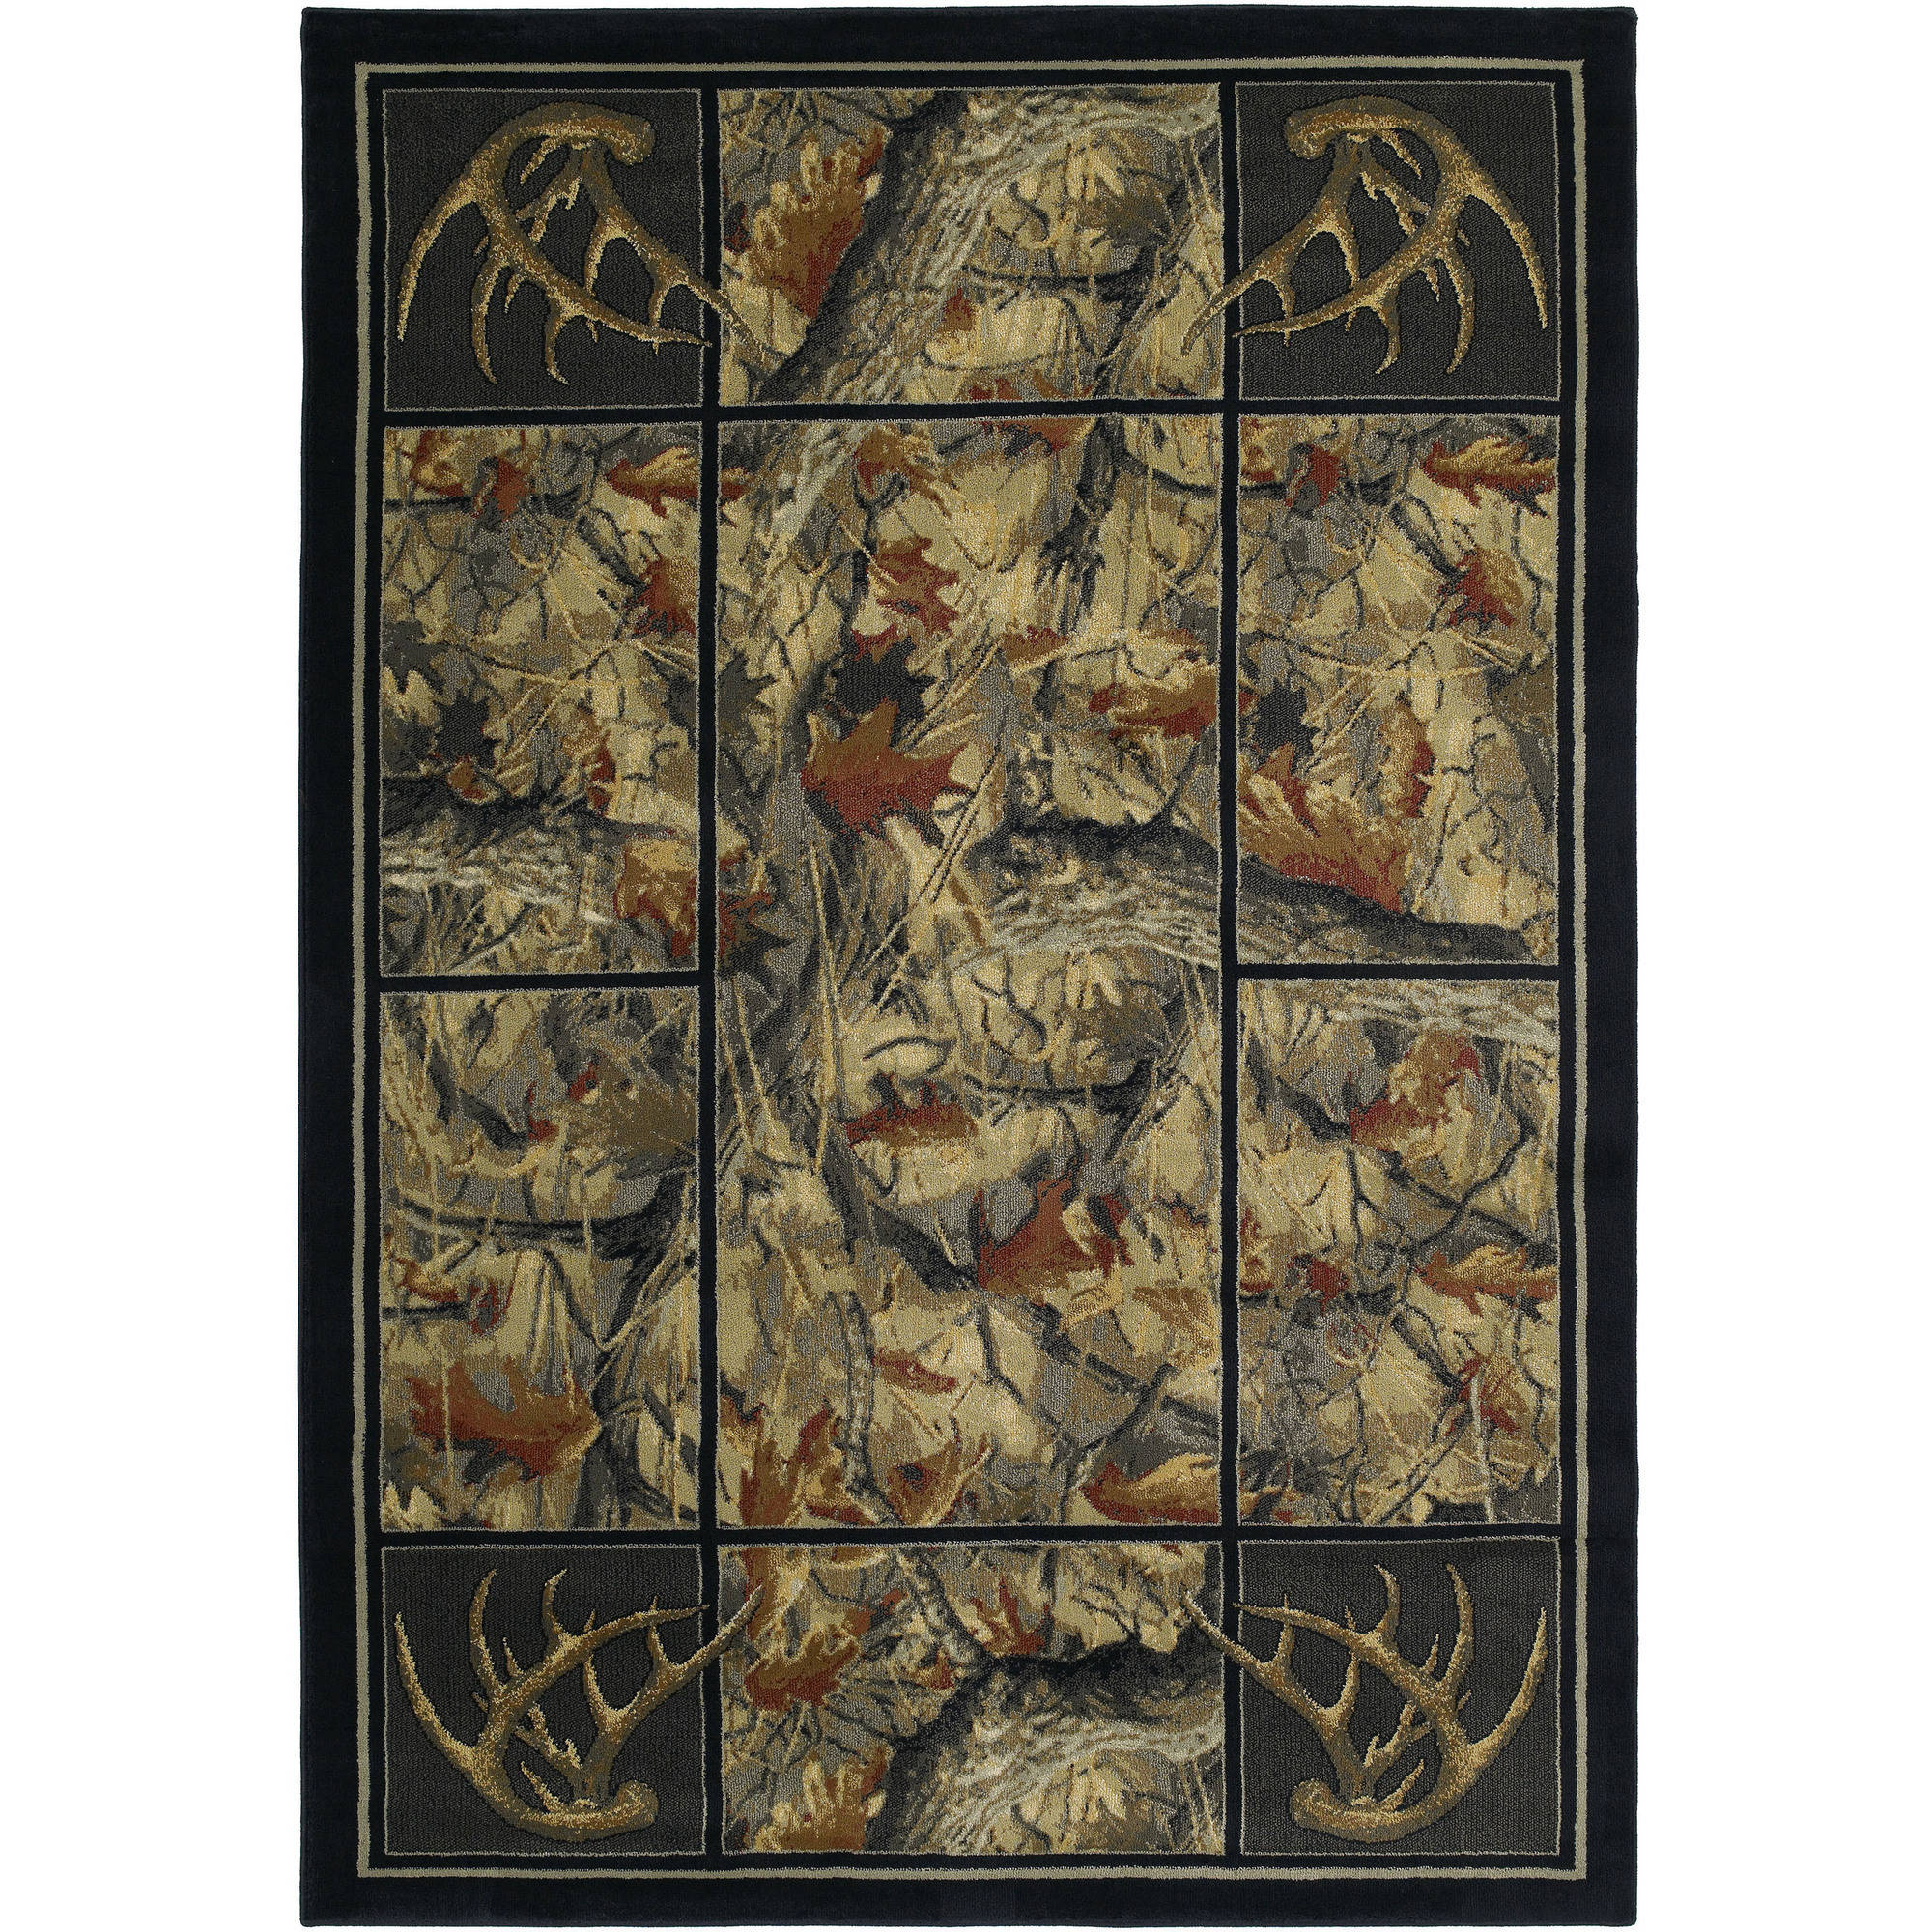 United Weavers Big Timber Camouflage Multi Woven Polypropylene Area Rug or Runner